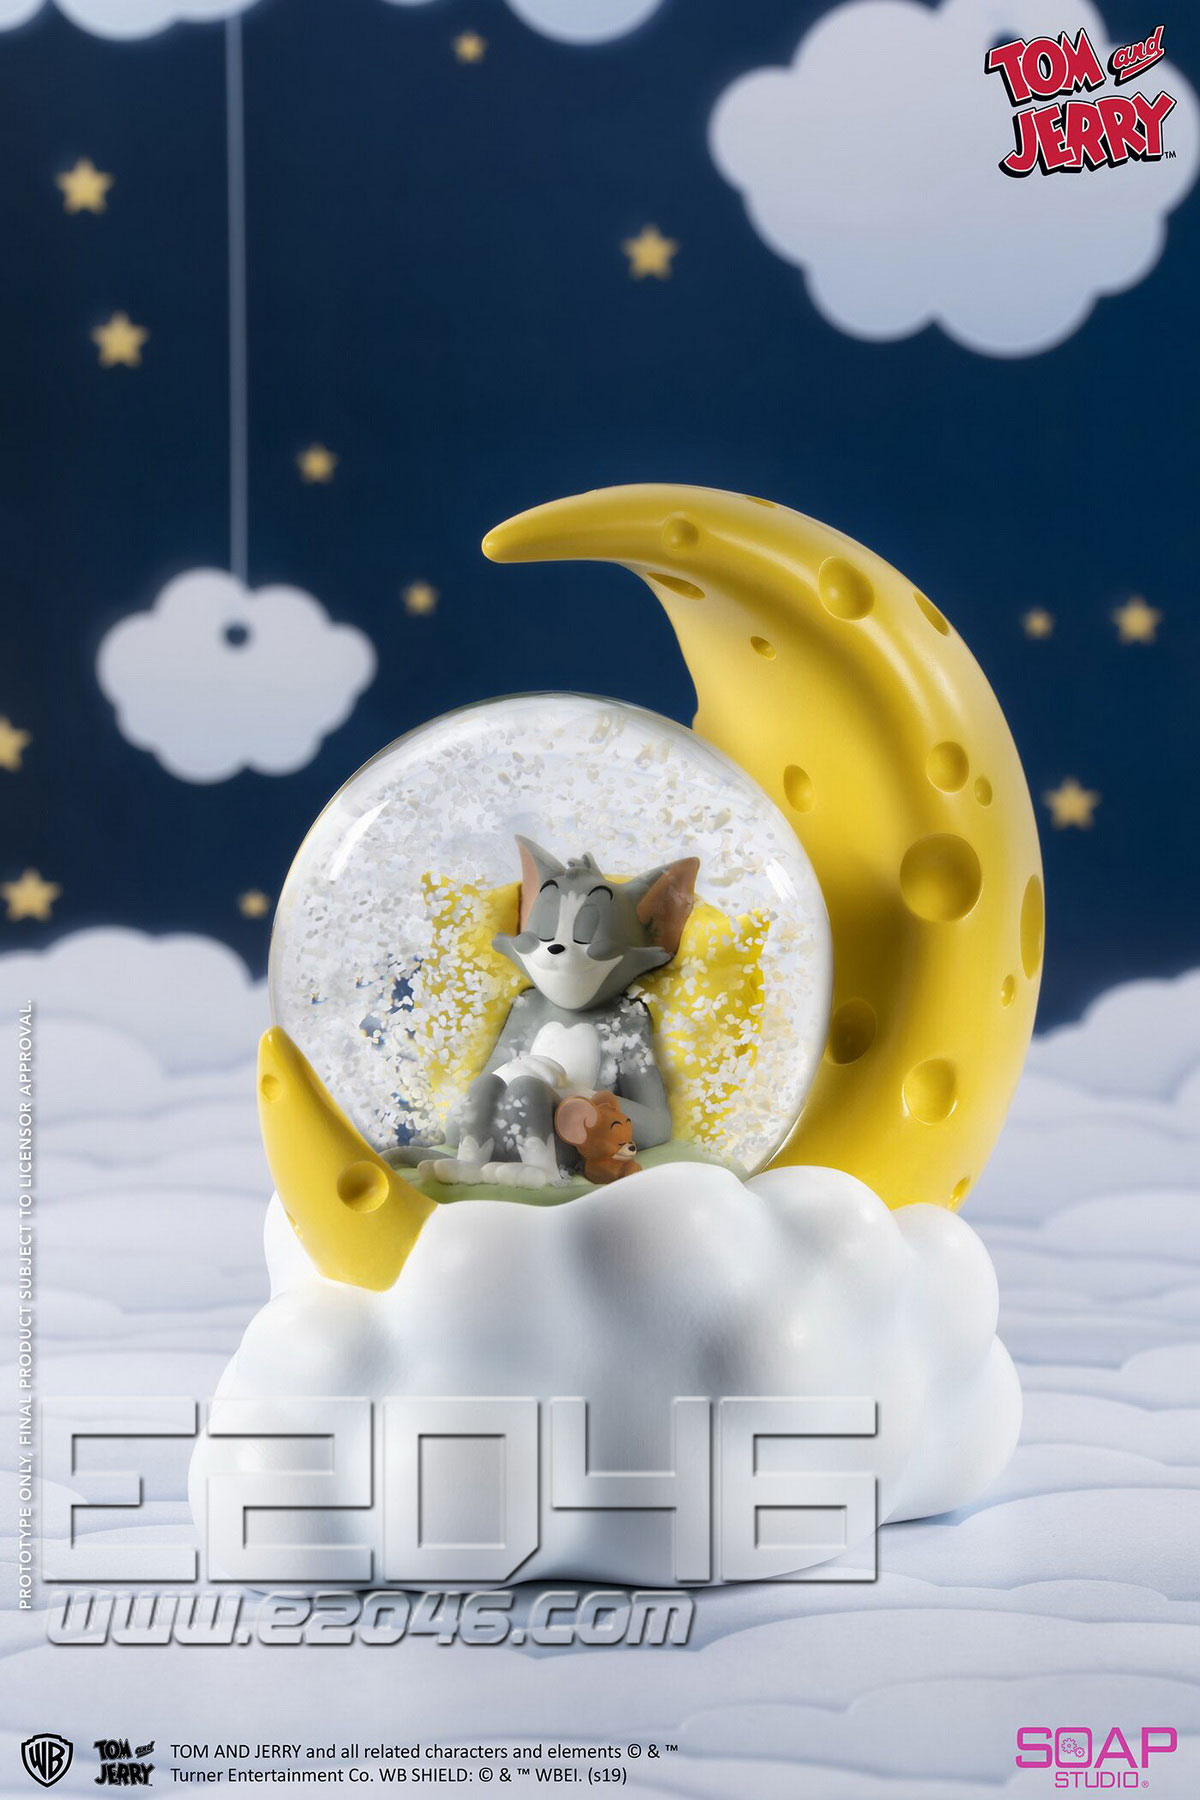 Tom and Jerry Cheese Moon Crystal Ball (DOLL)